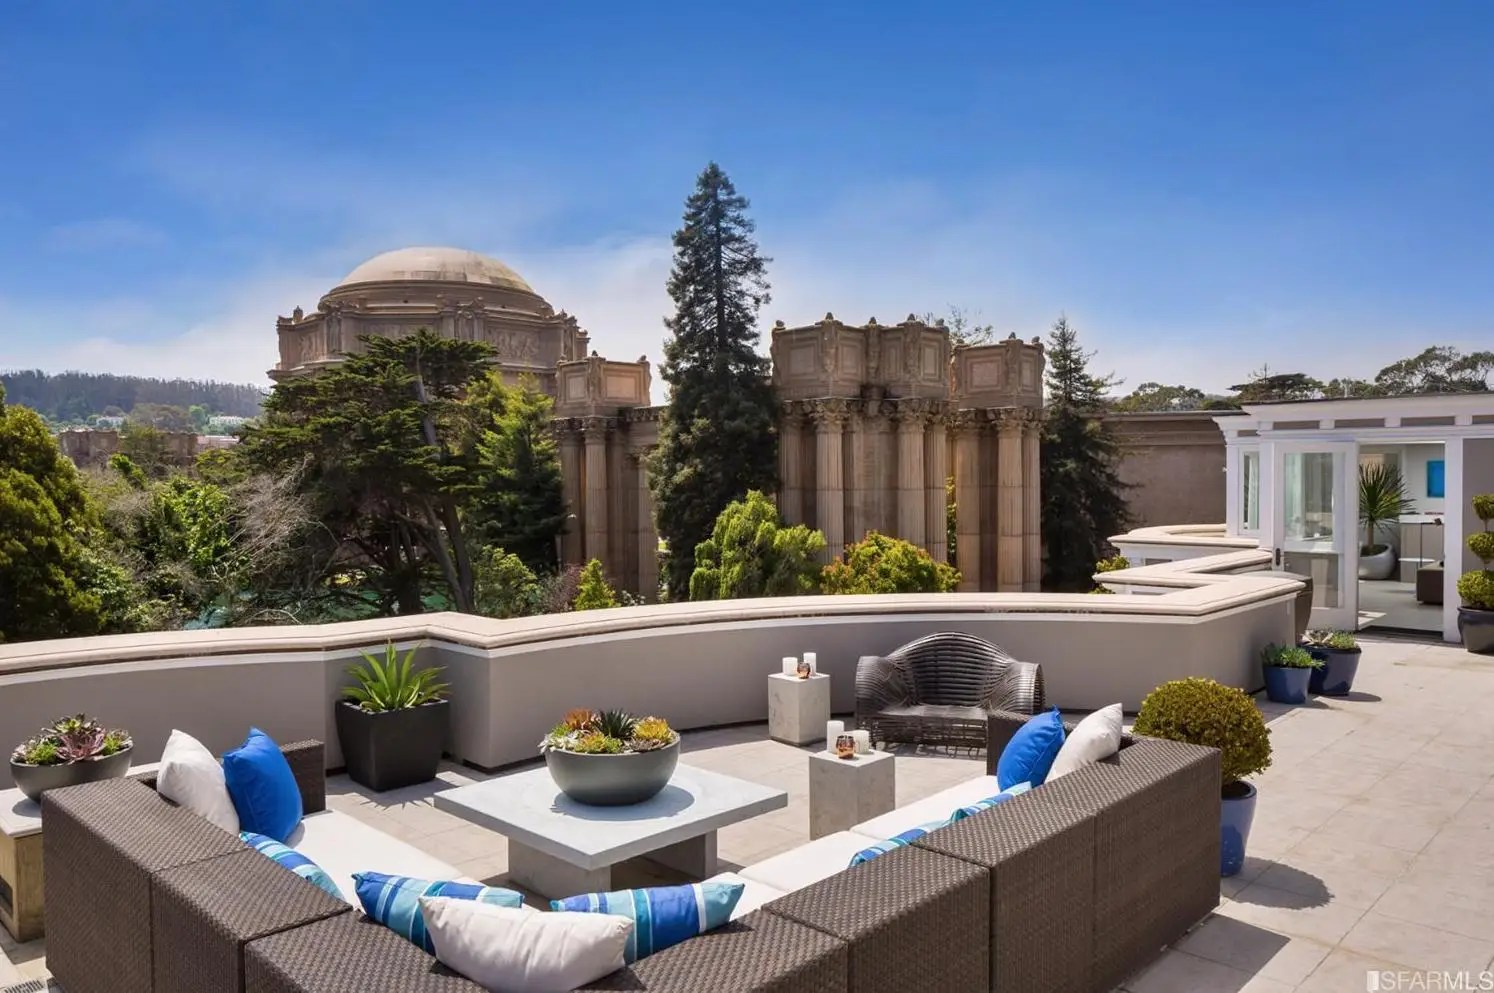 One of the best parts of this home, though, is its expansive roof deck. From one side, you'll get another close-up look at the Palace of Fine Arts.